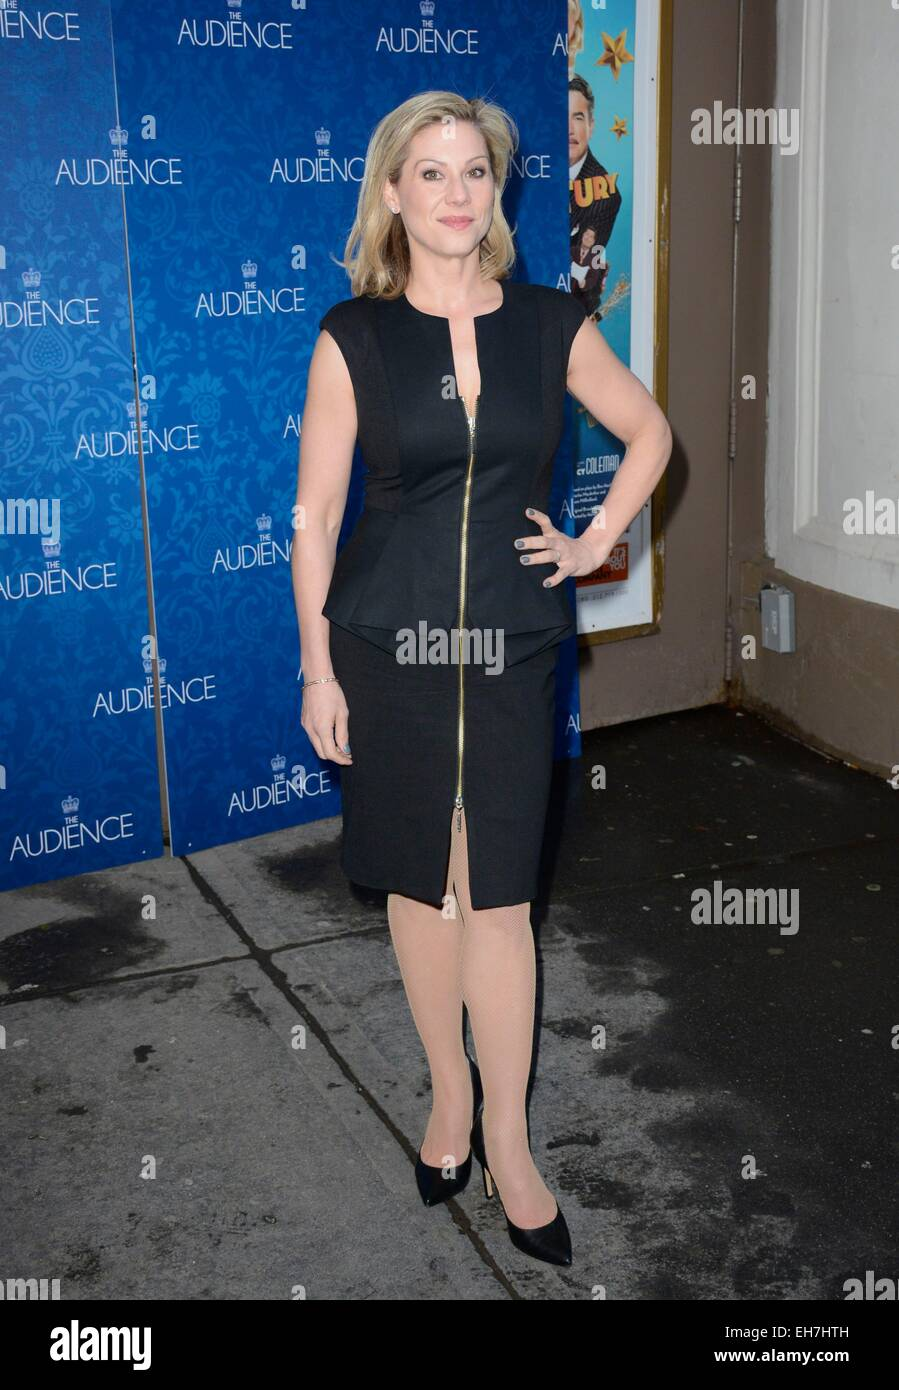 New York, NY, USA. 8th Mar, 2015. Lydia Leonard in attendance for THE AUDIENCE Opening Night on Broadway, Gerald Stock Photo